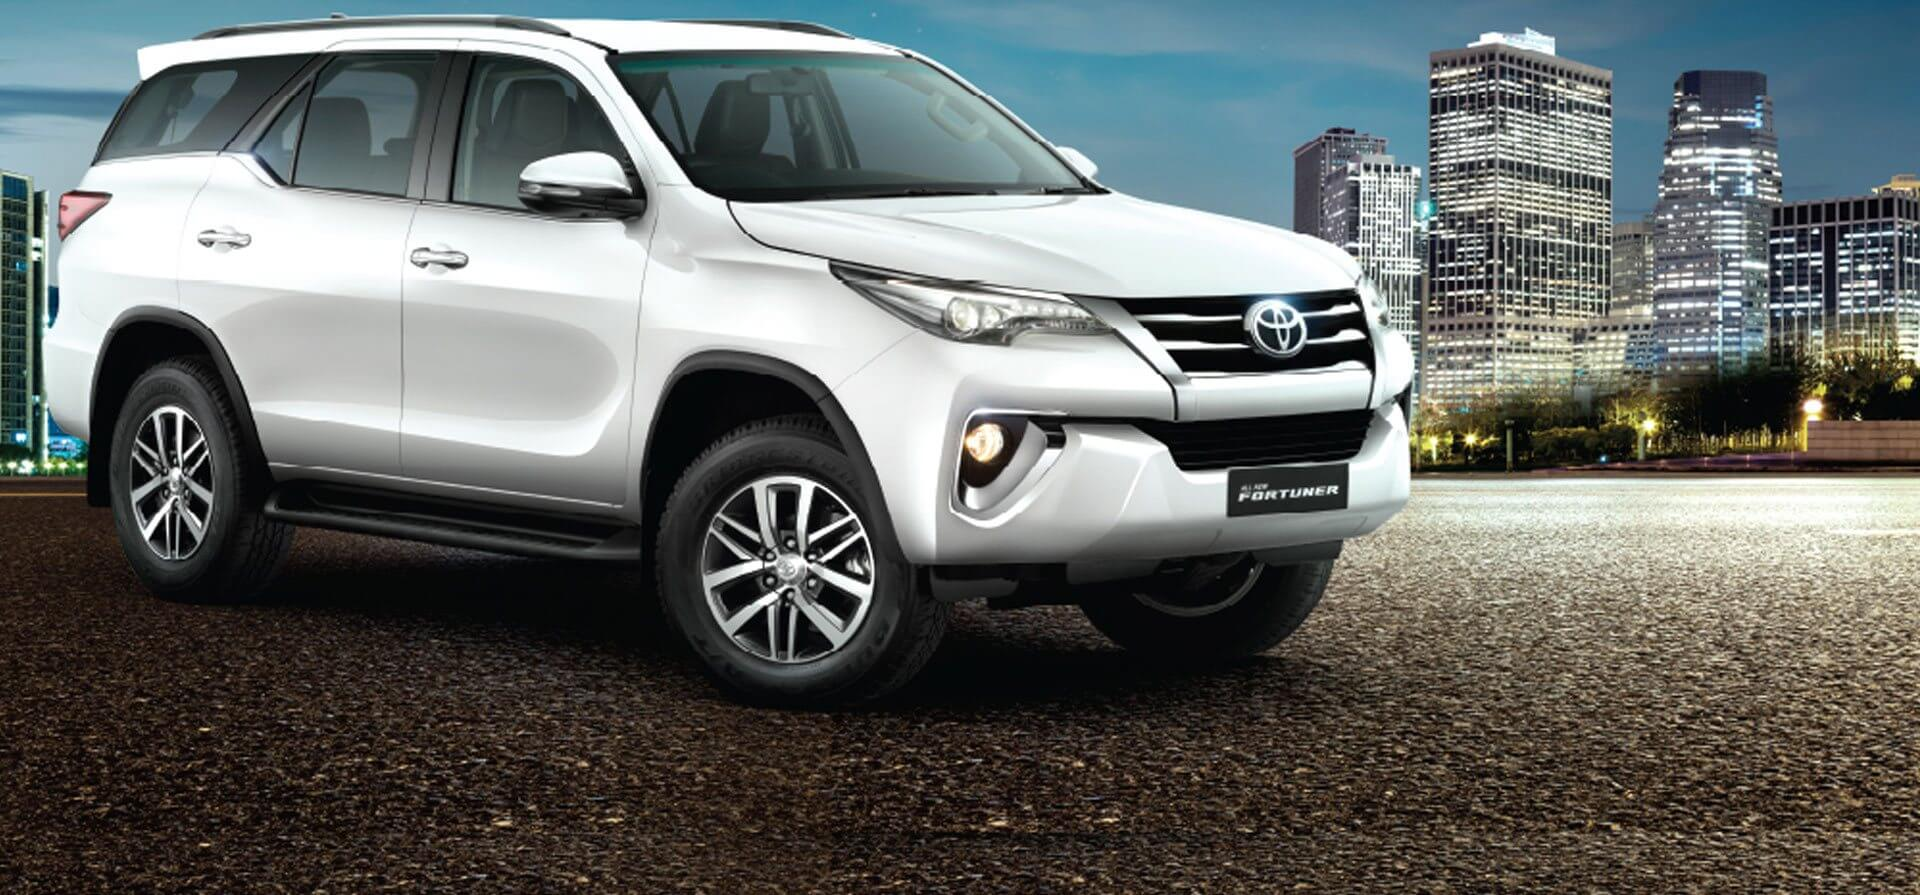 hight resolution of toyota fortuner wikipedia the powerful now becomes a style icon too